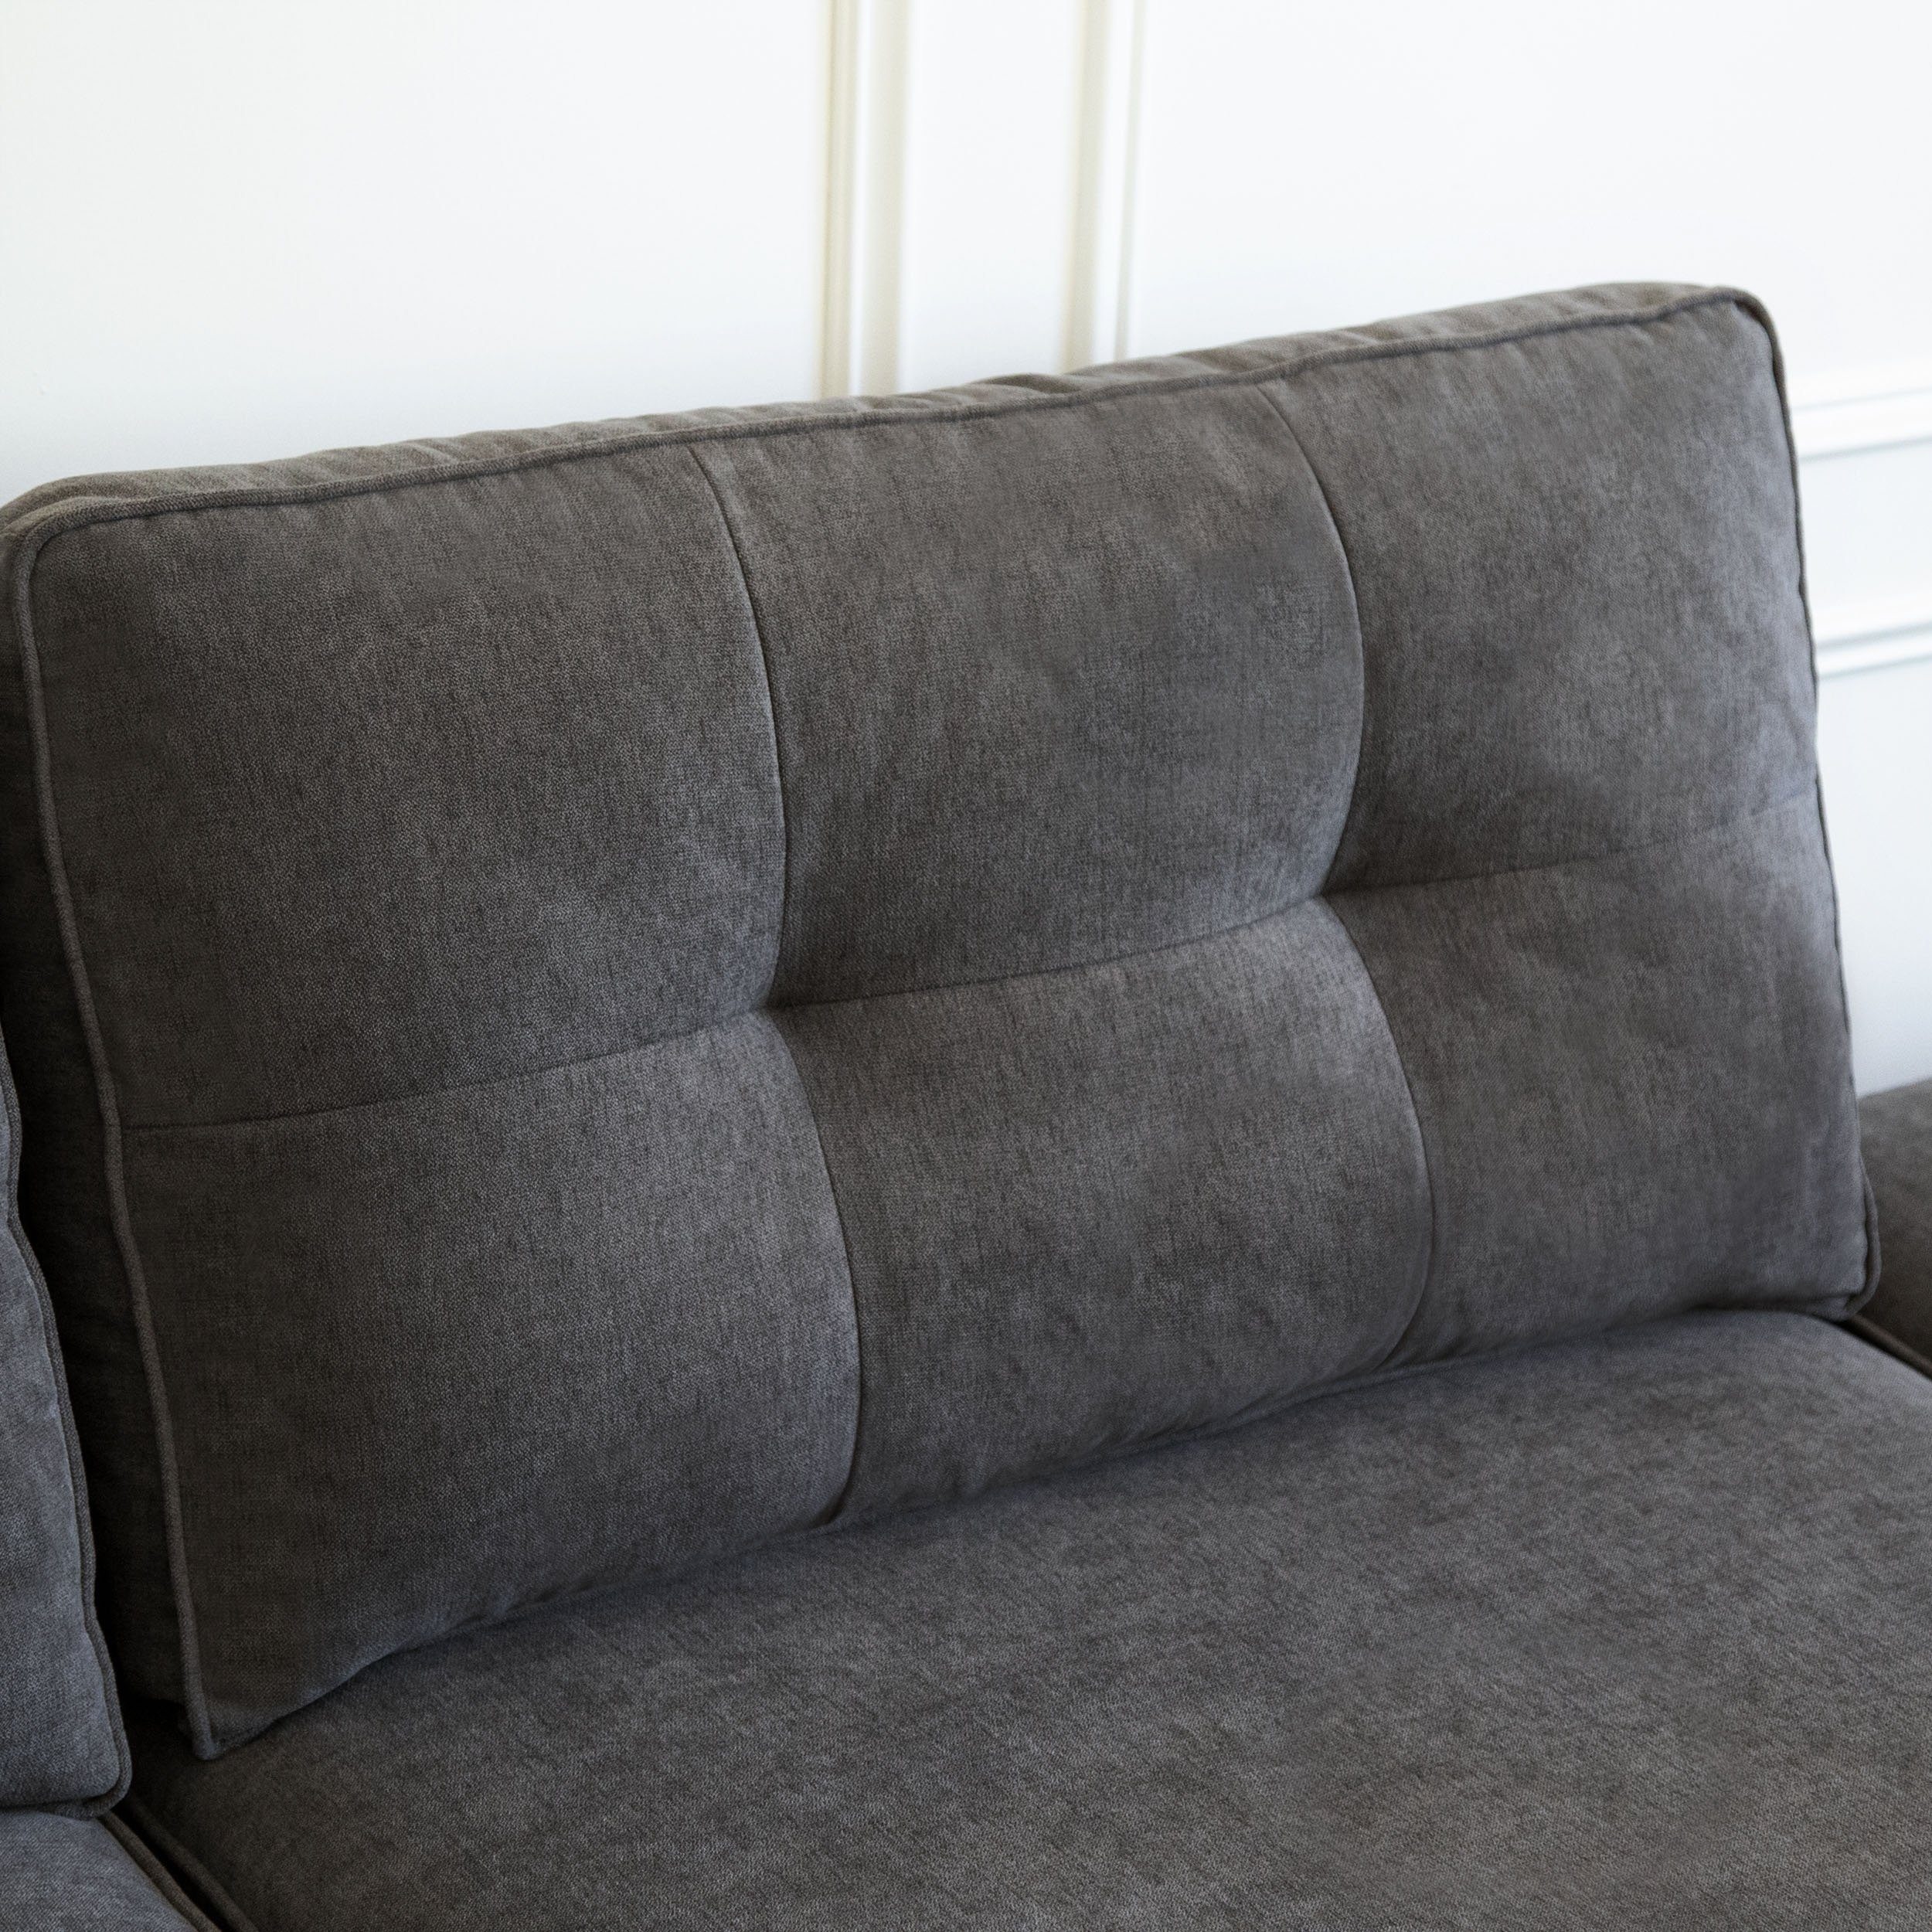 Shop Abbyson Maddox 5 Piece Modular Fabric Sectional – On Sale Intended For Maddox Oversized Sofa Chairs (View 25 of 25)